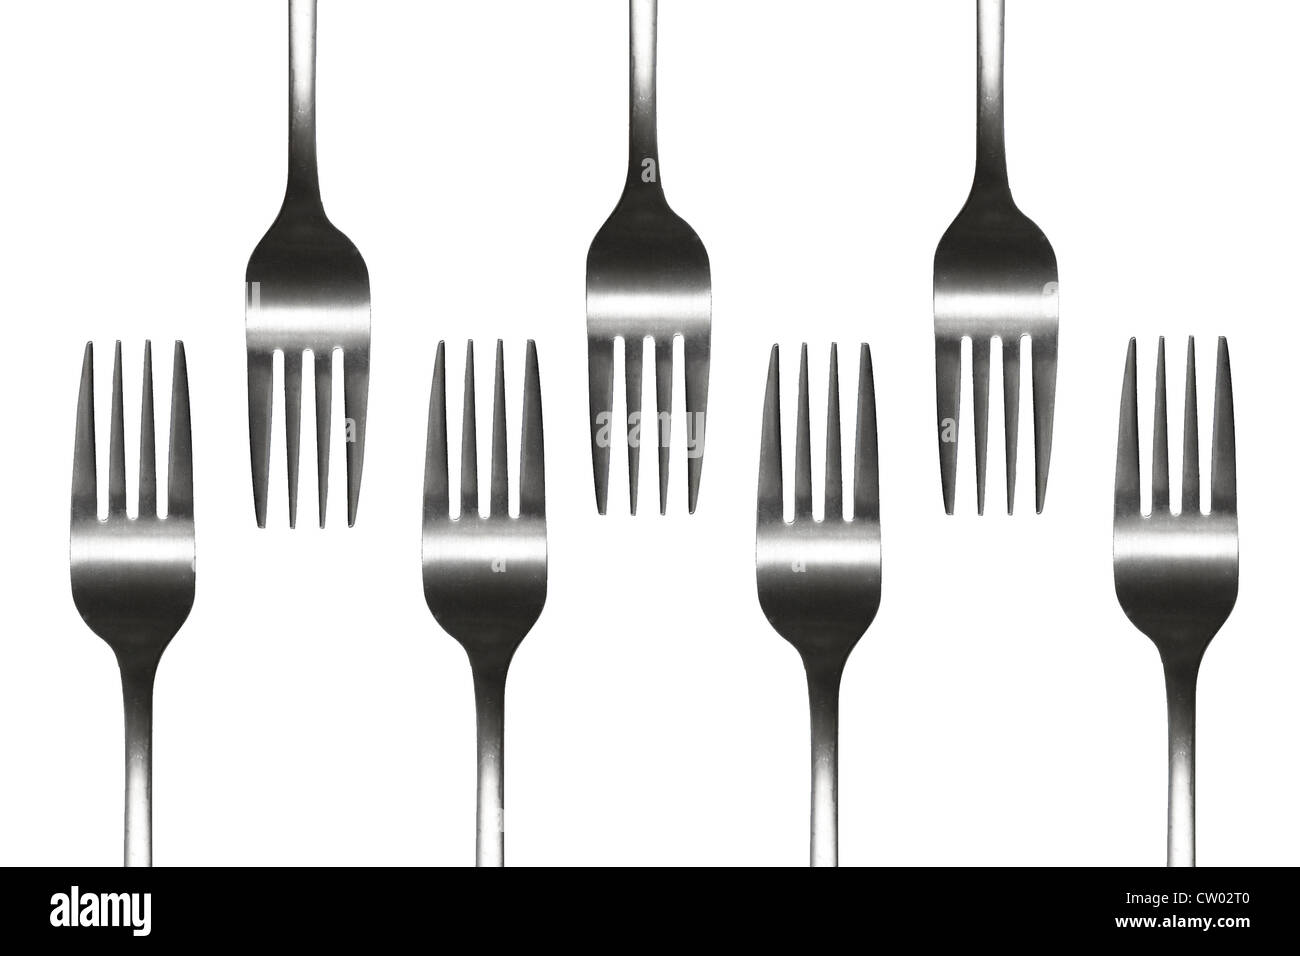 Forks isolated on white - Stock Image